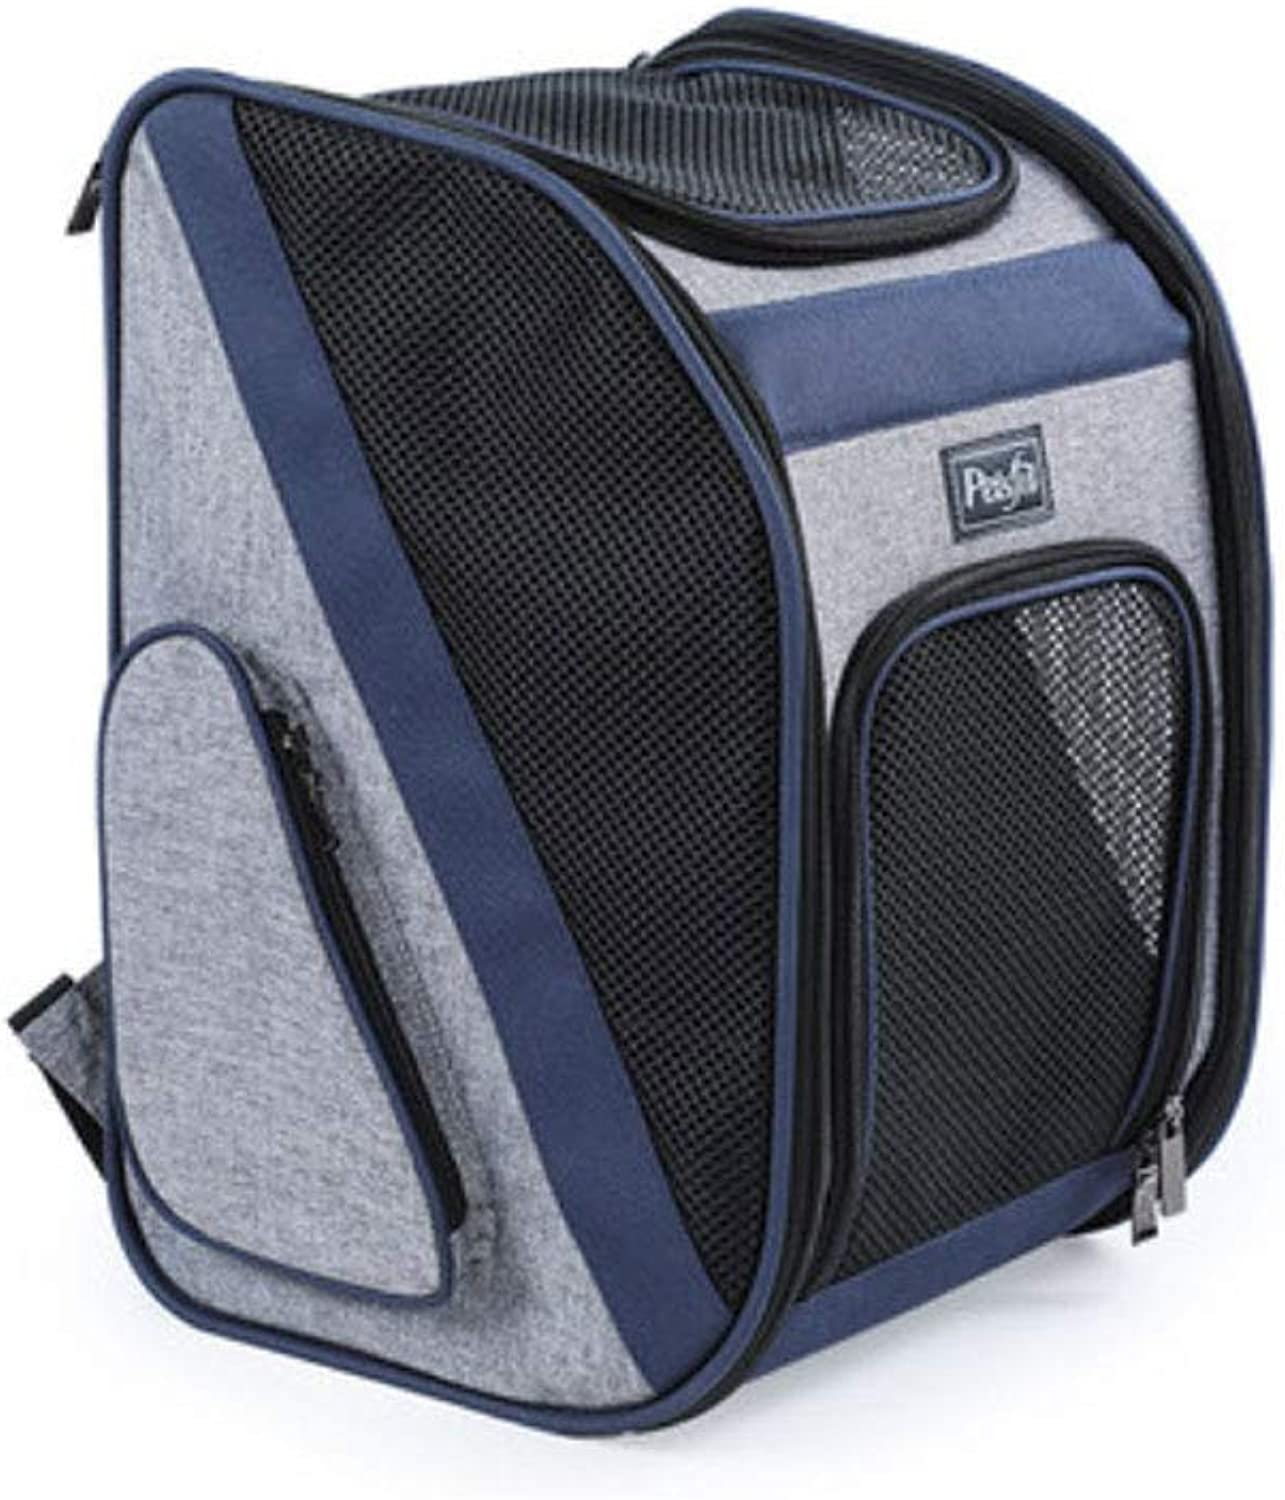 ZHANGQIAN Pet Carrier Backpack, Adattabile Pet Front Cat Carrier Backpack Travel Bag, Legs Out, EasyFit for Traveling Hiking Camping